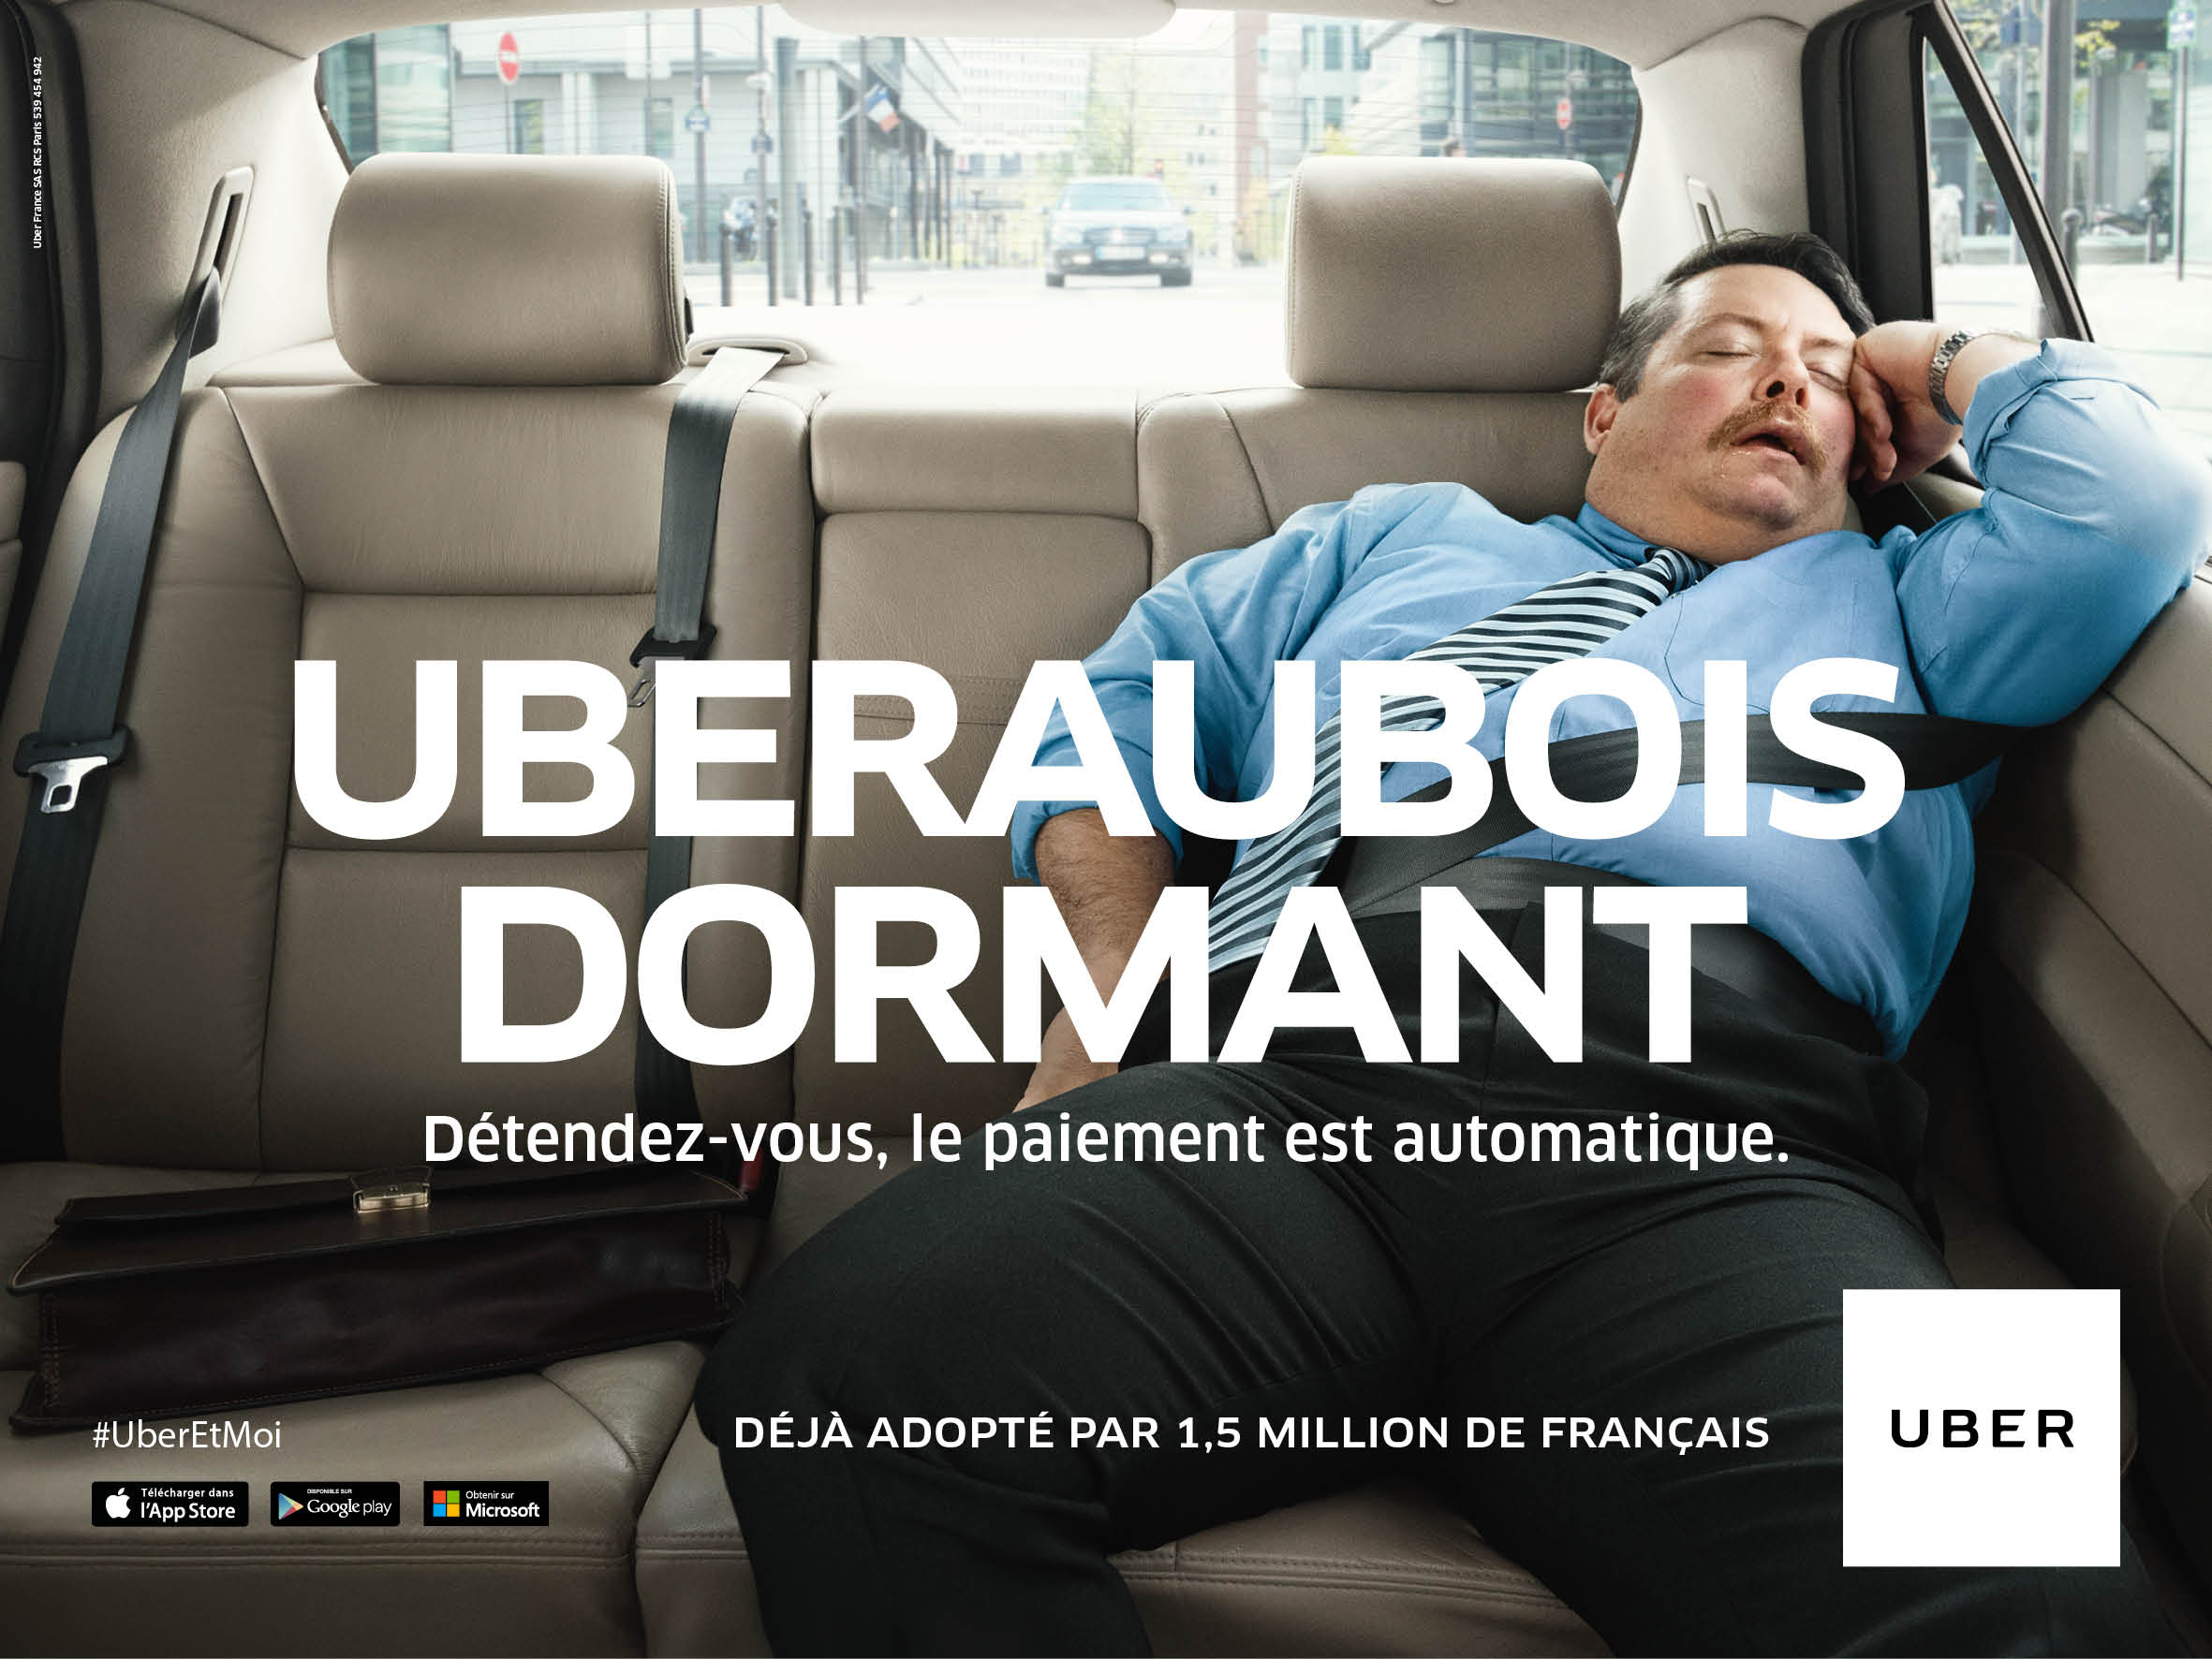 uber-france-publicite-marketing-application-utilisateurs-passagers-mars-2016-agence-marcel-publicis-7